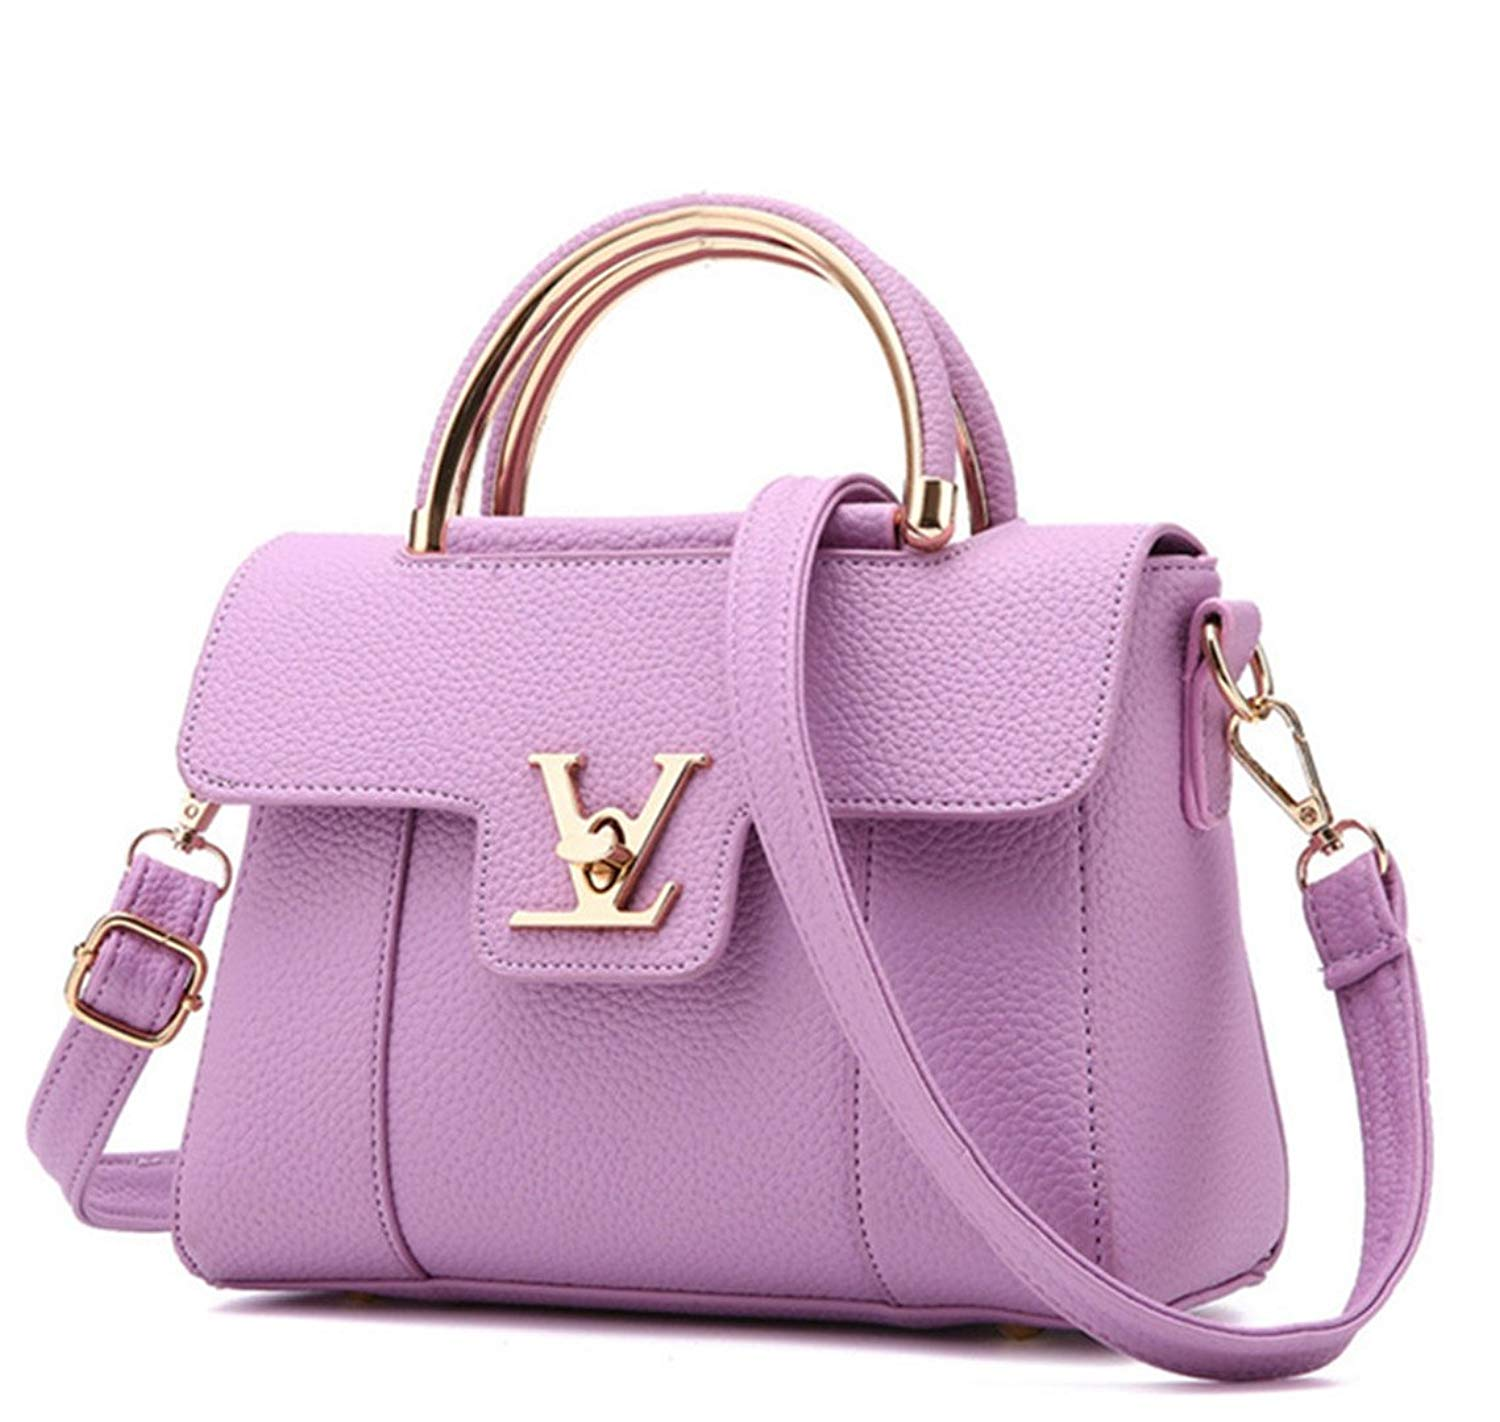 87b4d637a884 Get Quotations · Fake Designer Bags V Women s Luxury Leather Clutch Bag  Ladies Handbags Brand Women Messenger Bags Sac